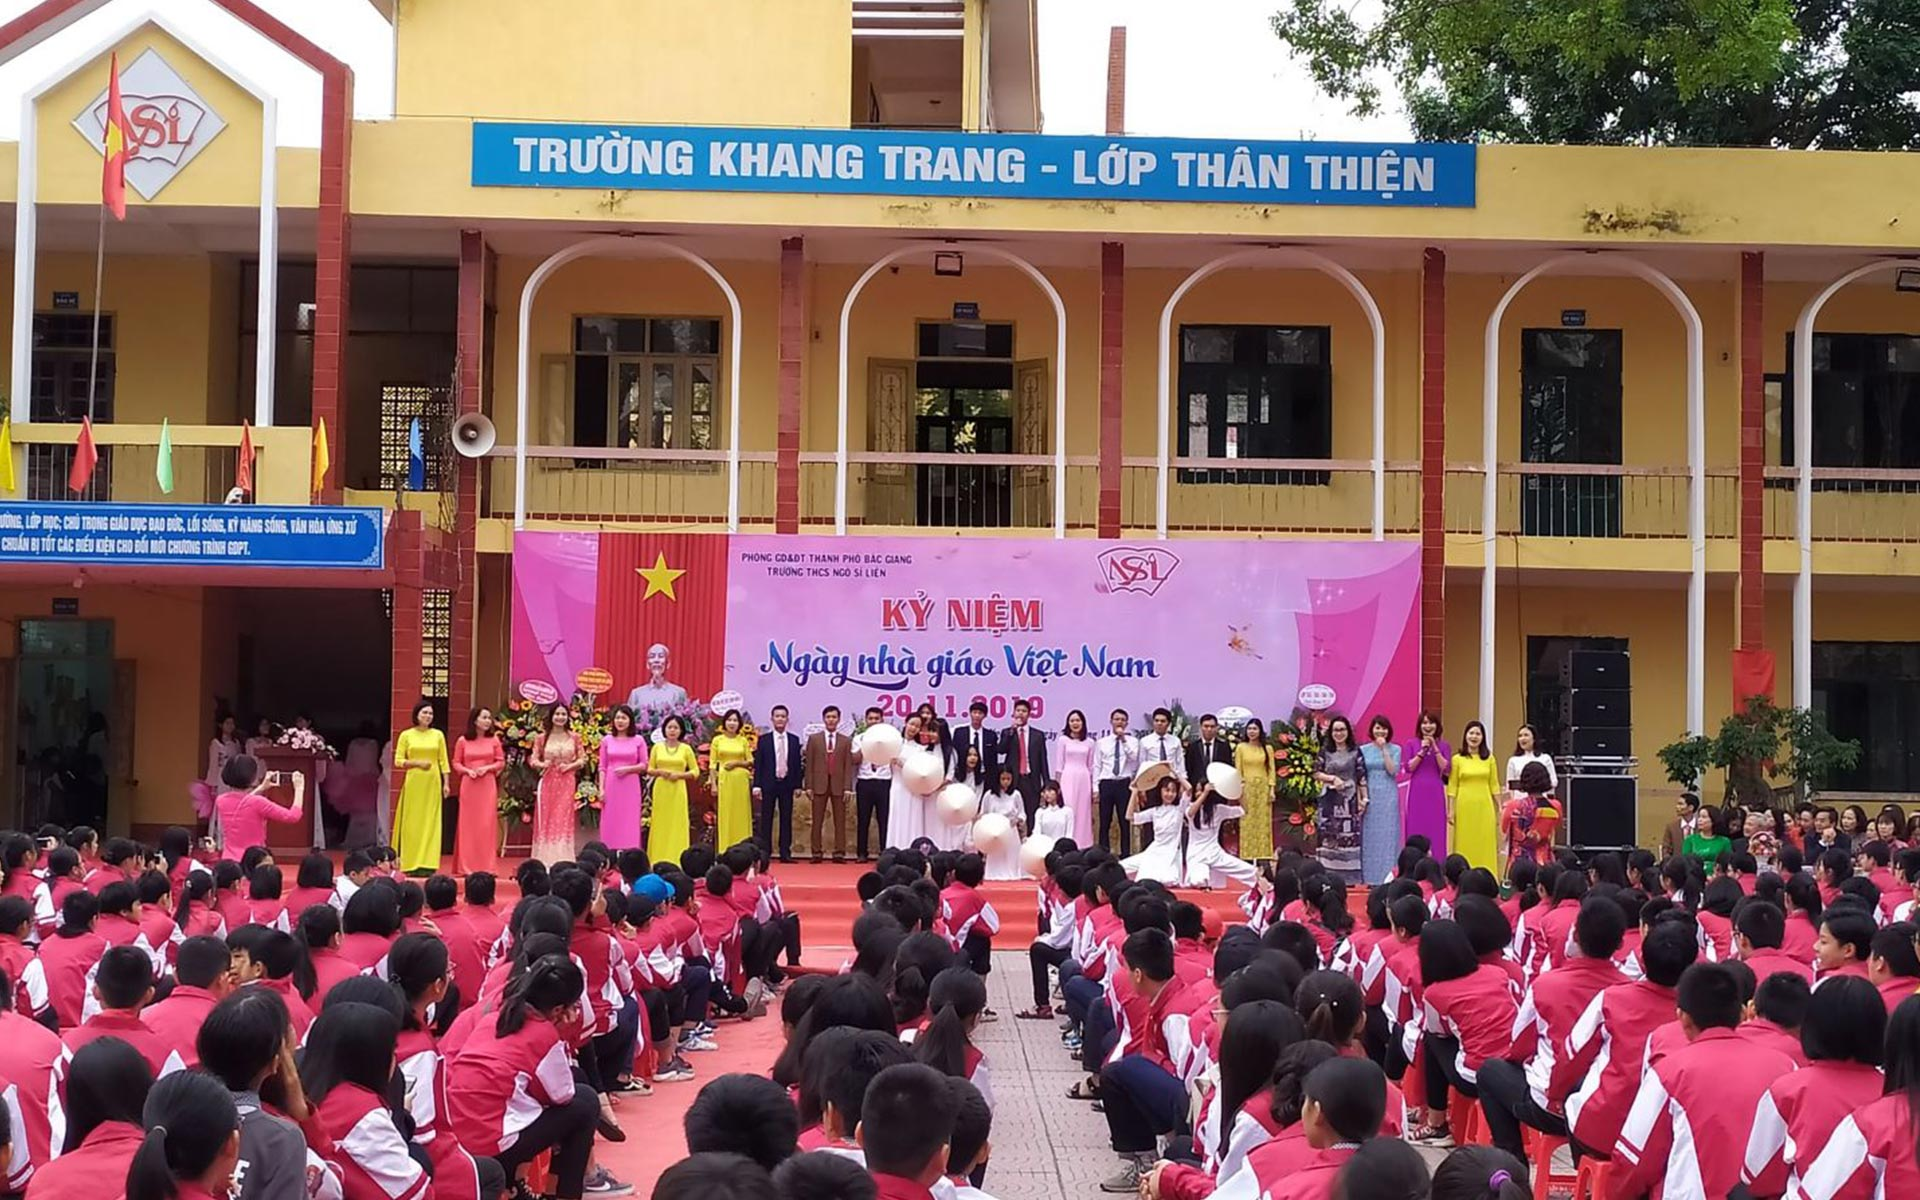 A school is organizing the celebration of Vietnamese Teacher's Day